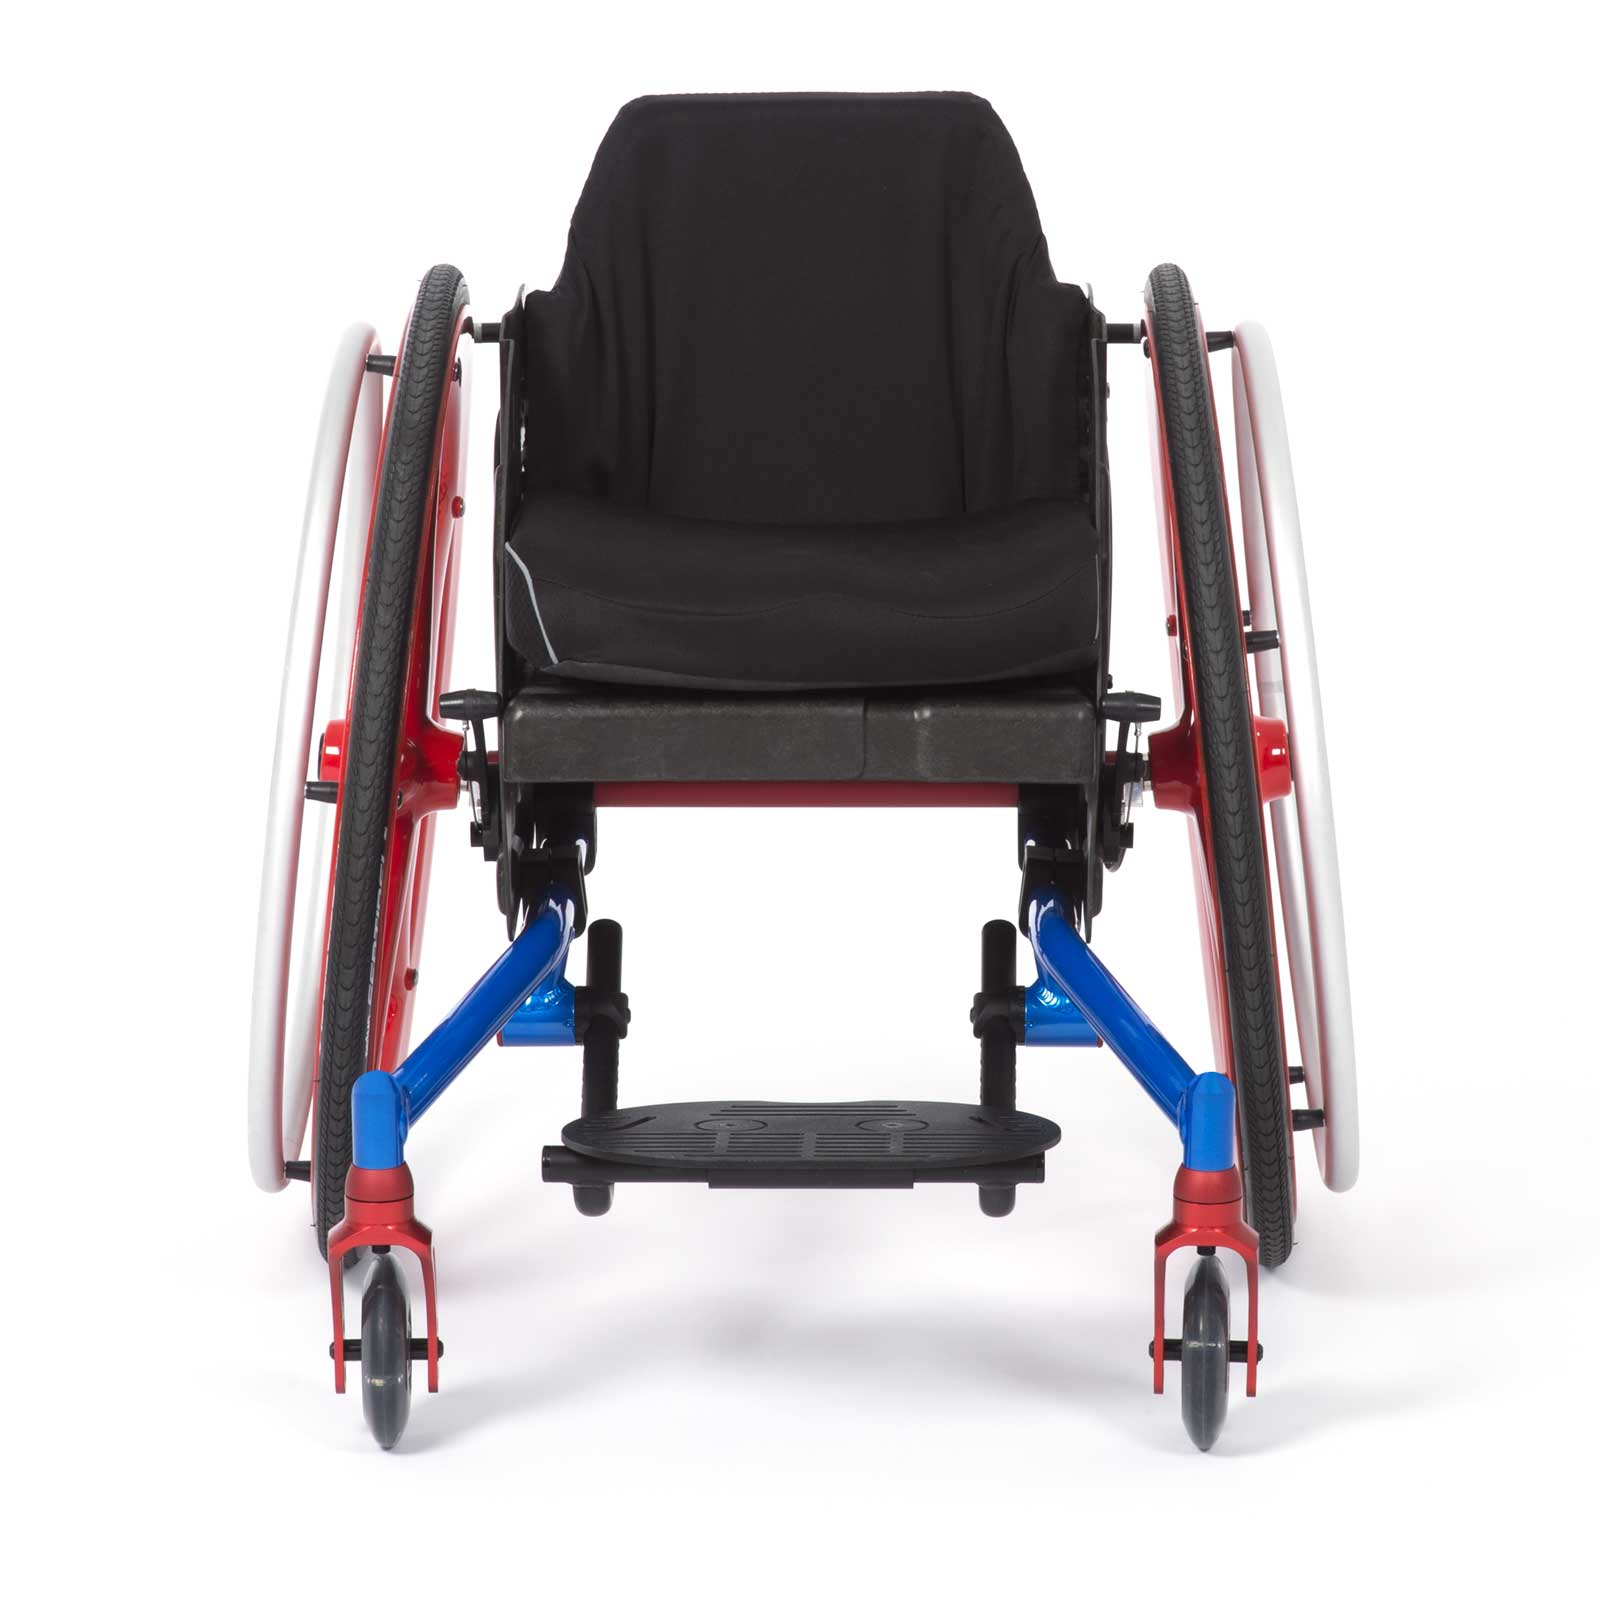 TiLite Pilot paediatric wheelchair front facing